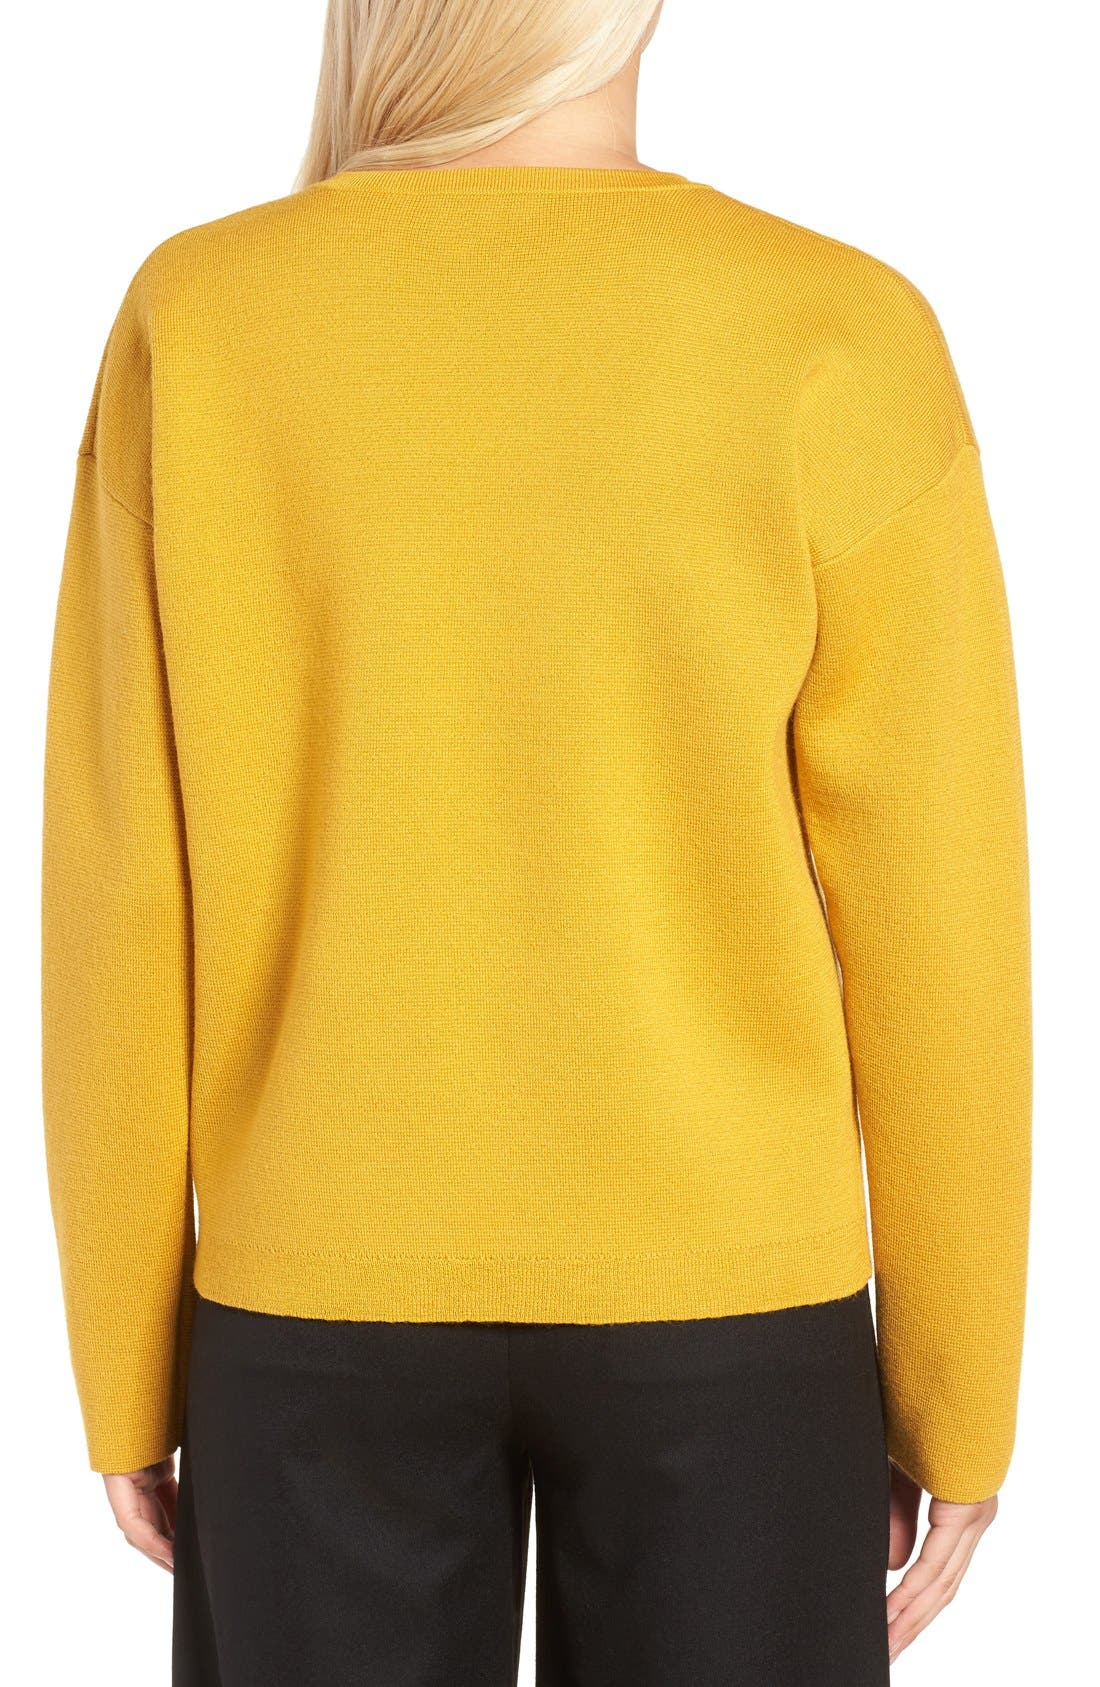 Alternate Image 2  - J.Crew Collection Bonded Lace-Up Sweater